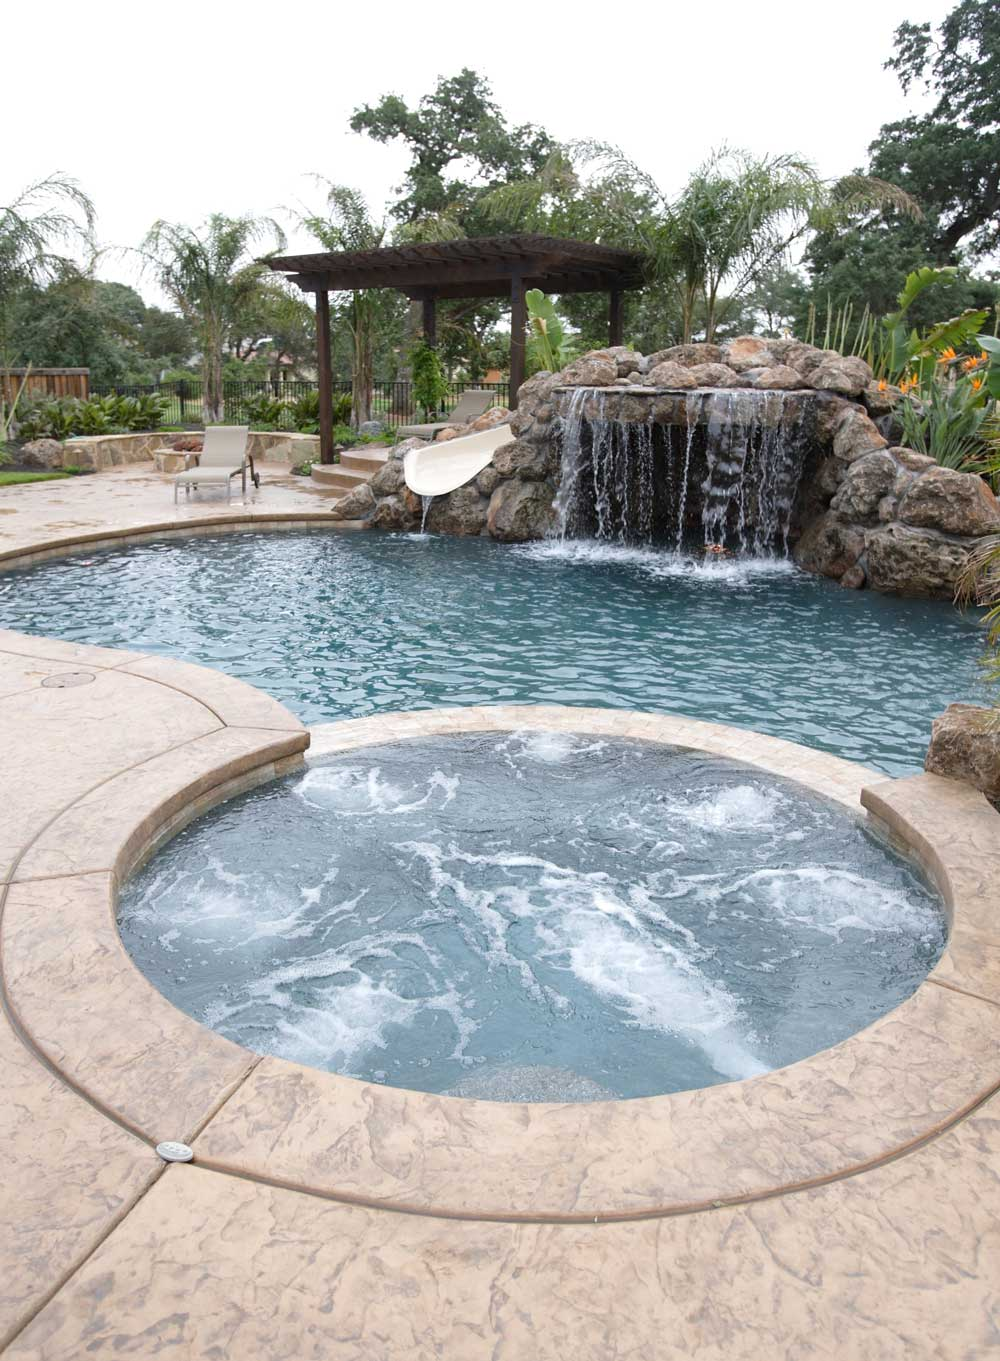 Unique pool designs hayward poolside blog for How to design a pool